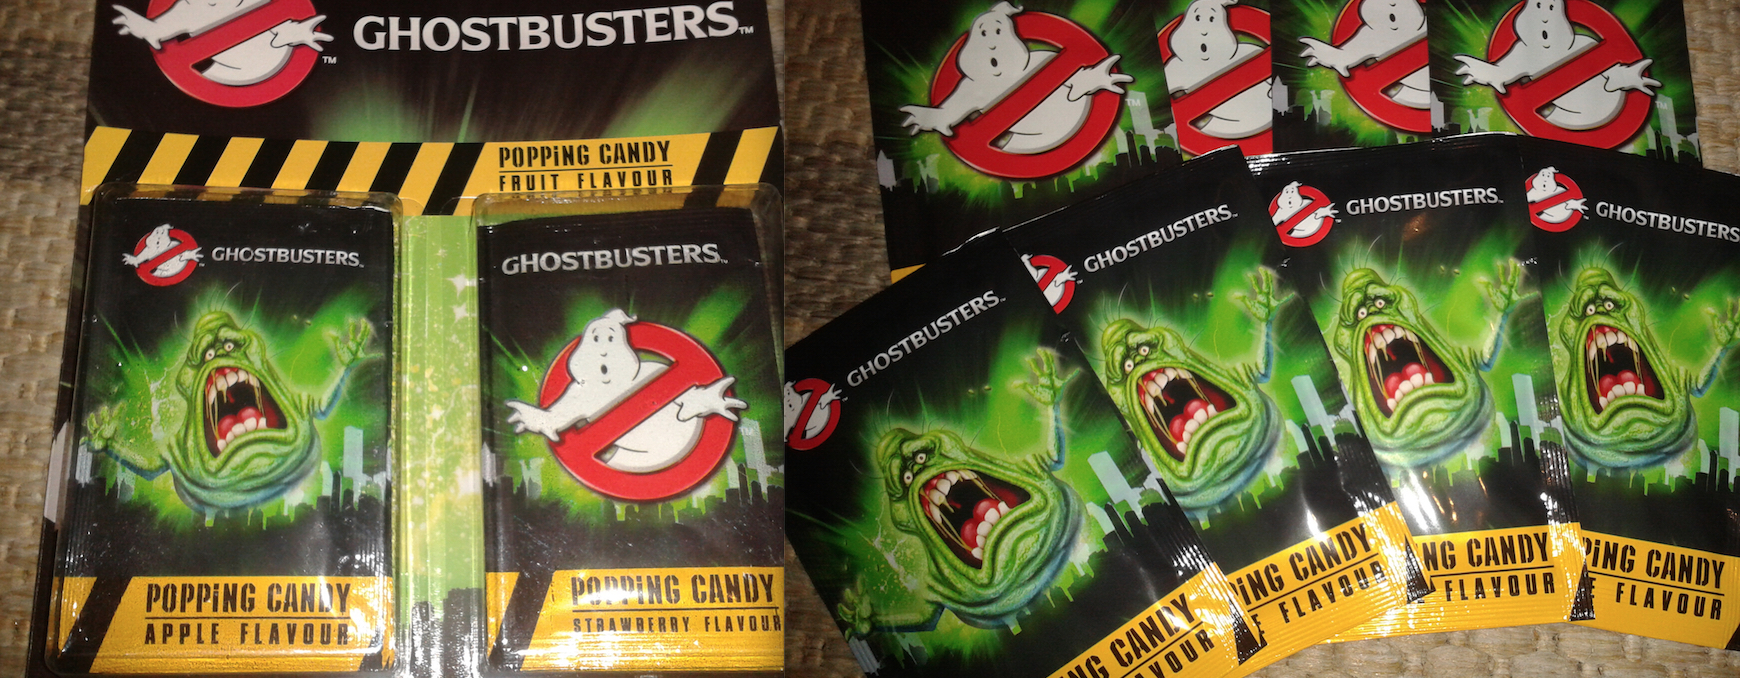 Ghostbusters Popping Candy - UK Exclusive